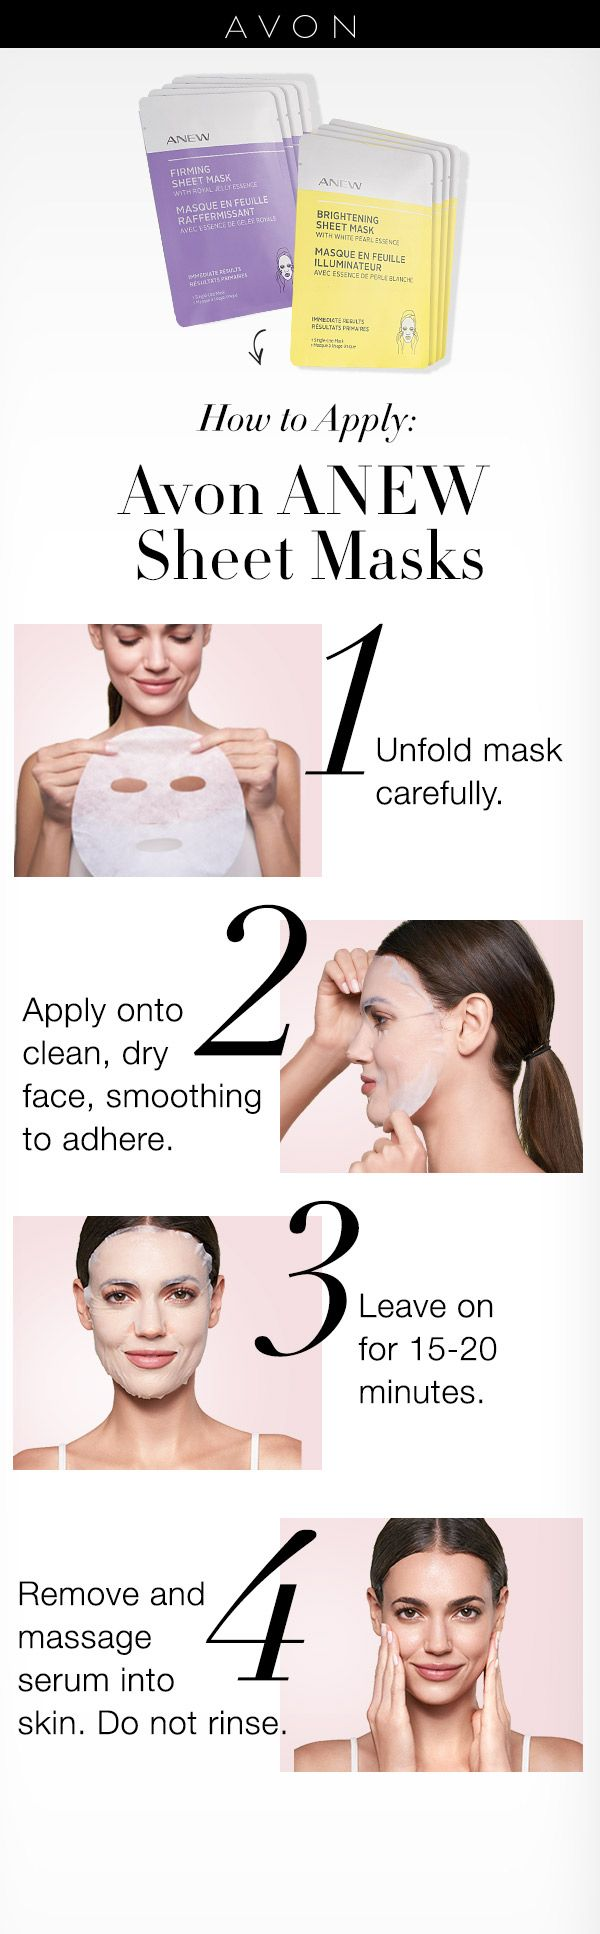 How to apply Avon ANEW Sheet Masks